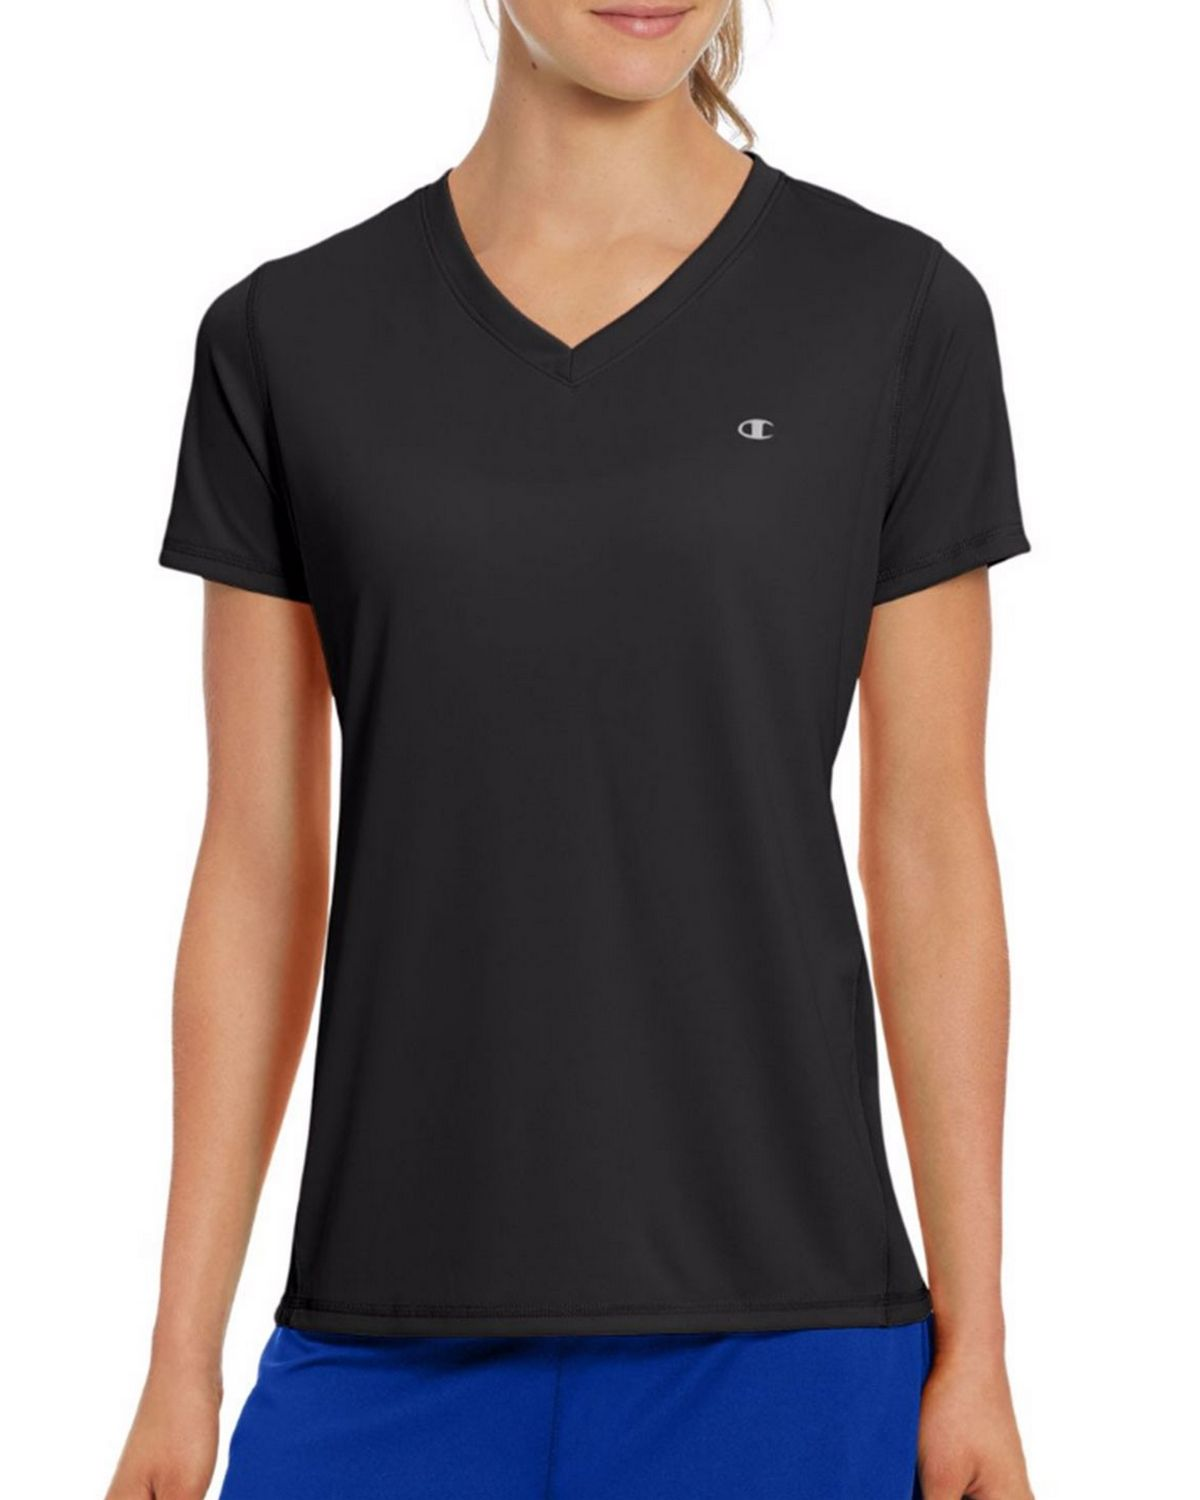 Champion W50063 Vapor Womens Tee - Black - XL W50063